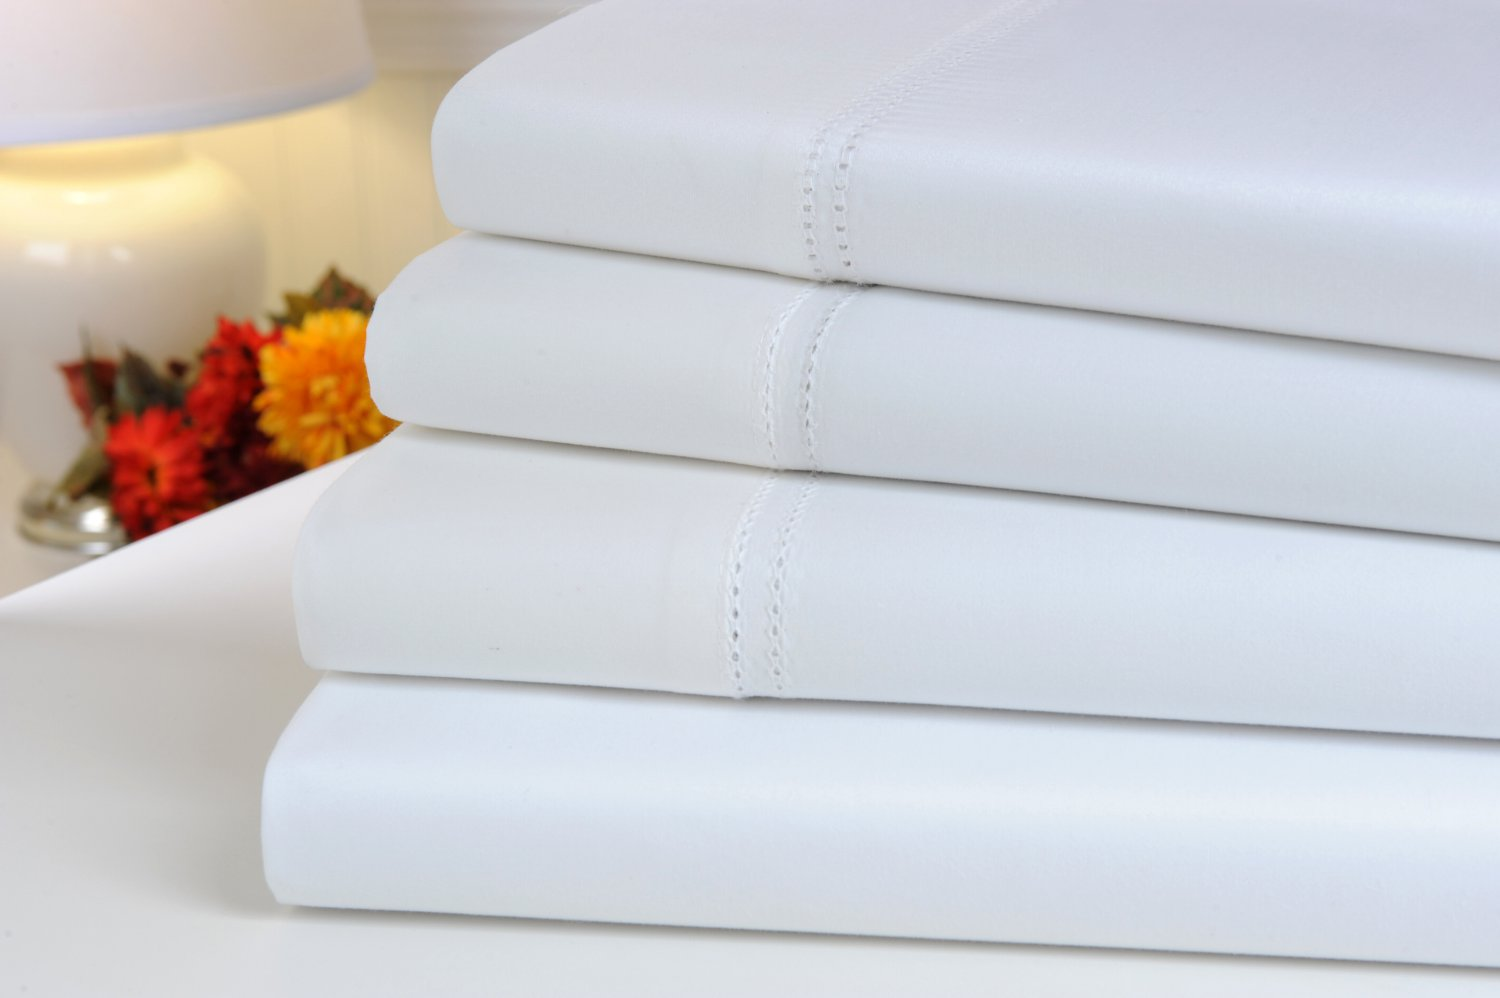 Oxford Collection 1000 Thread Count Hemstitch Egyptian Cotton Queen Sheet Set, White